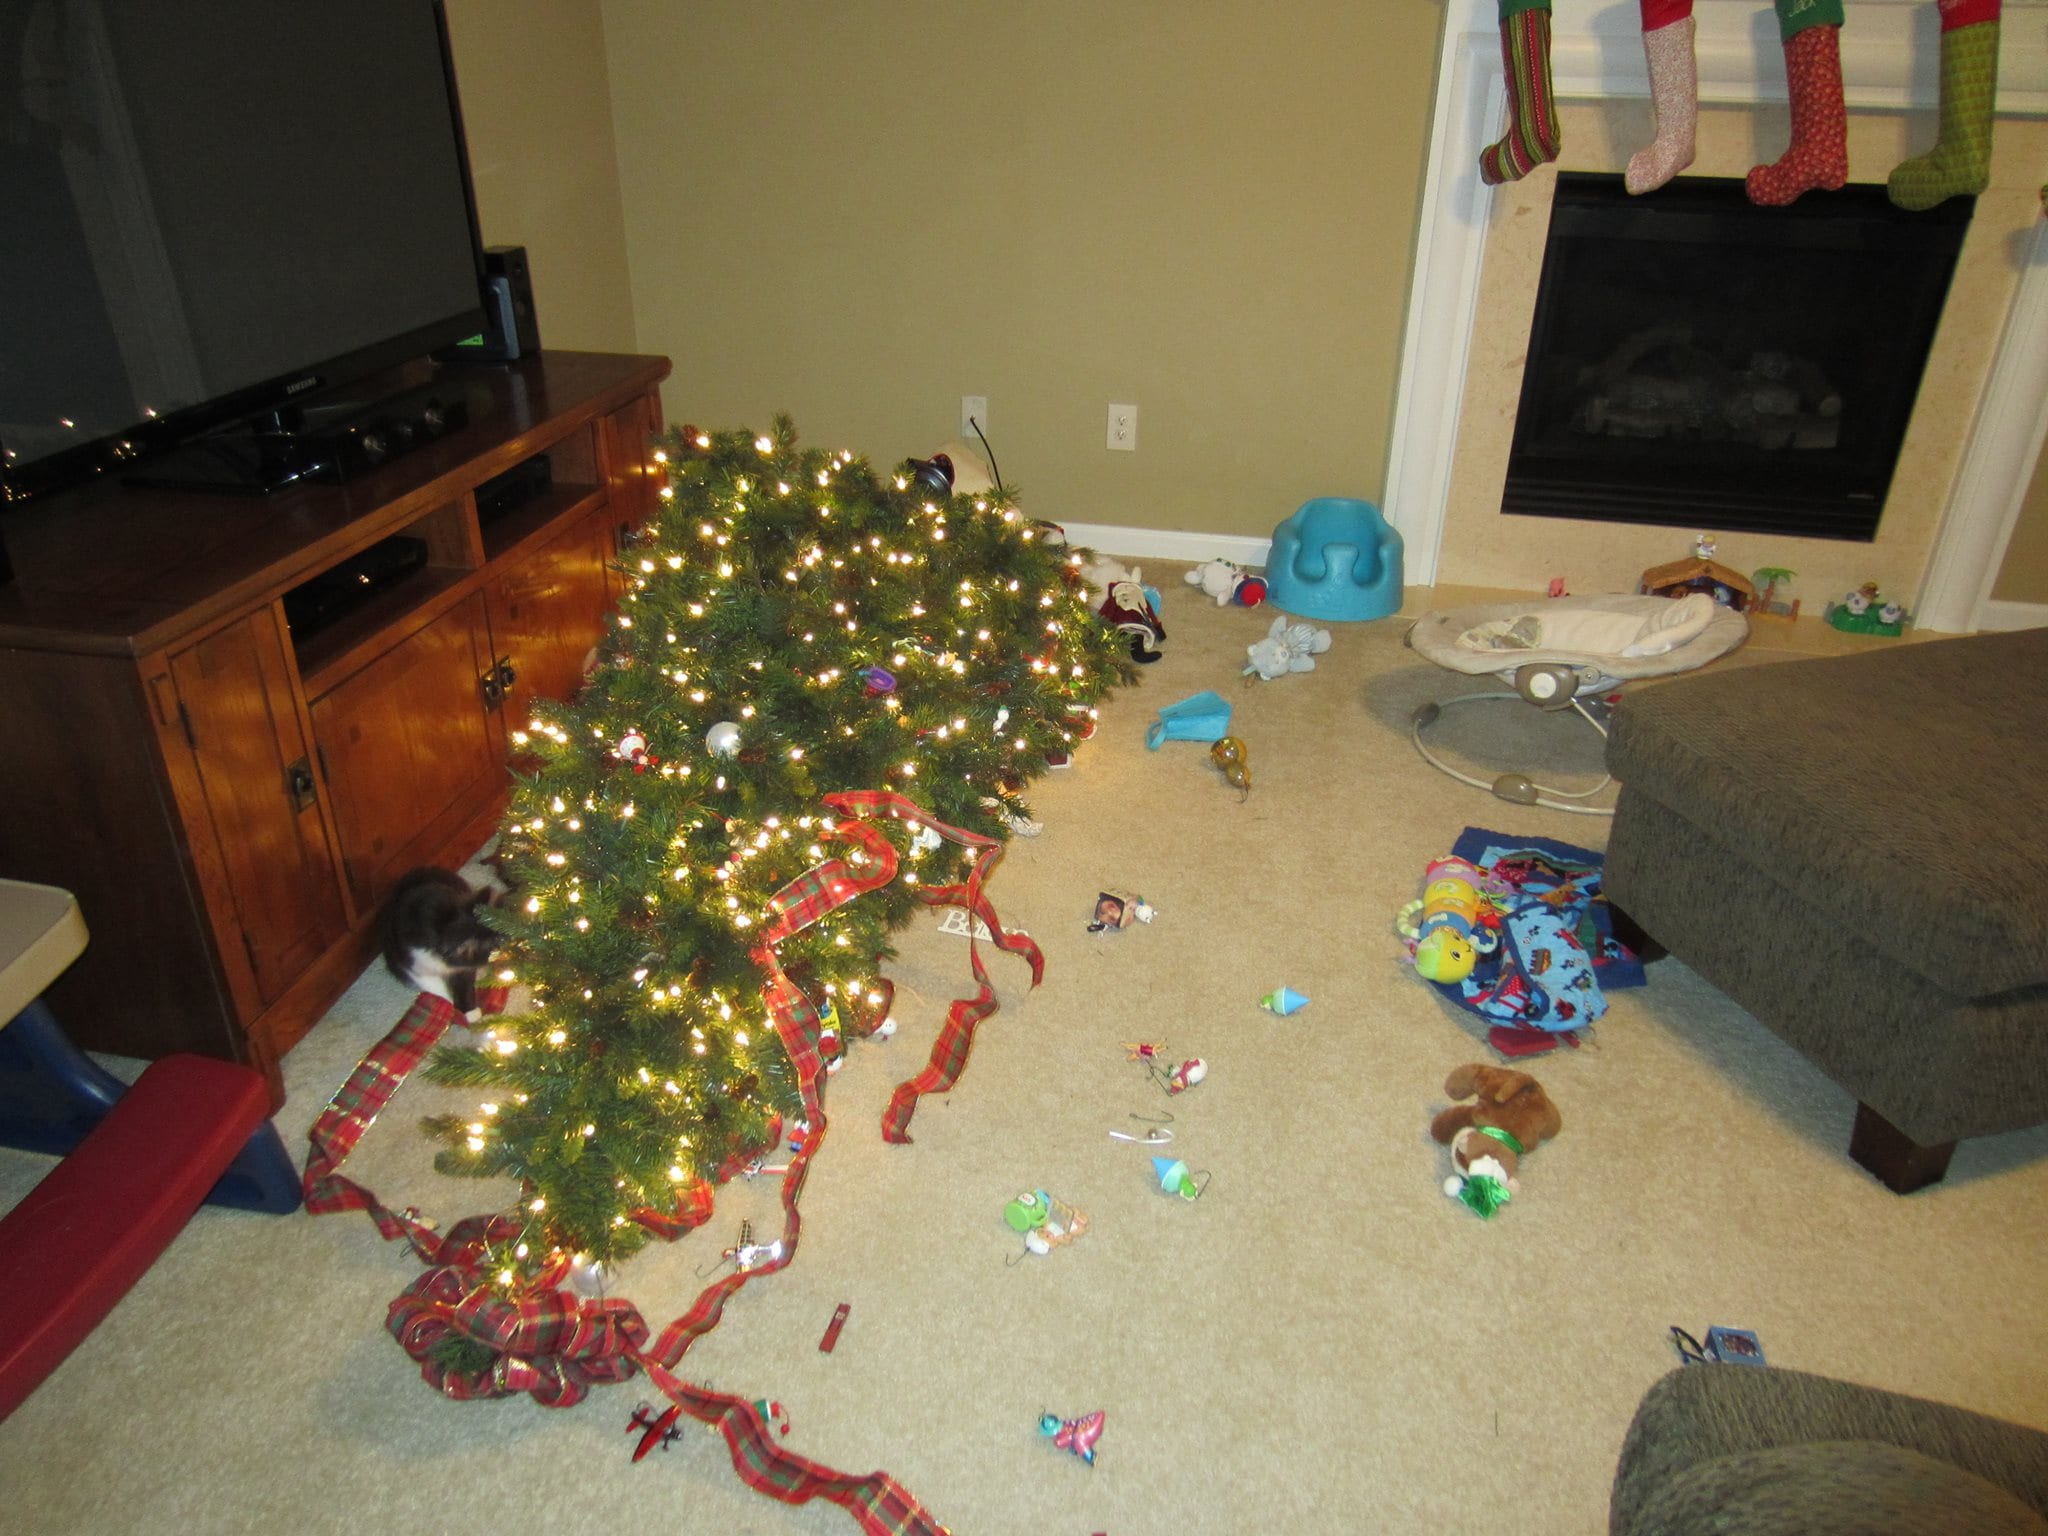 Two year old knocks down Christmas tree